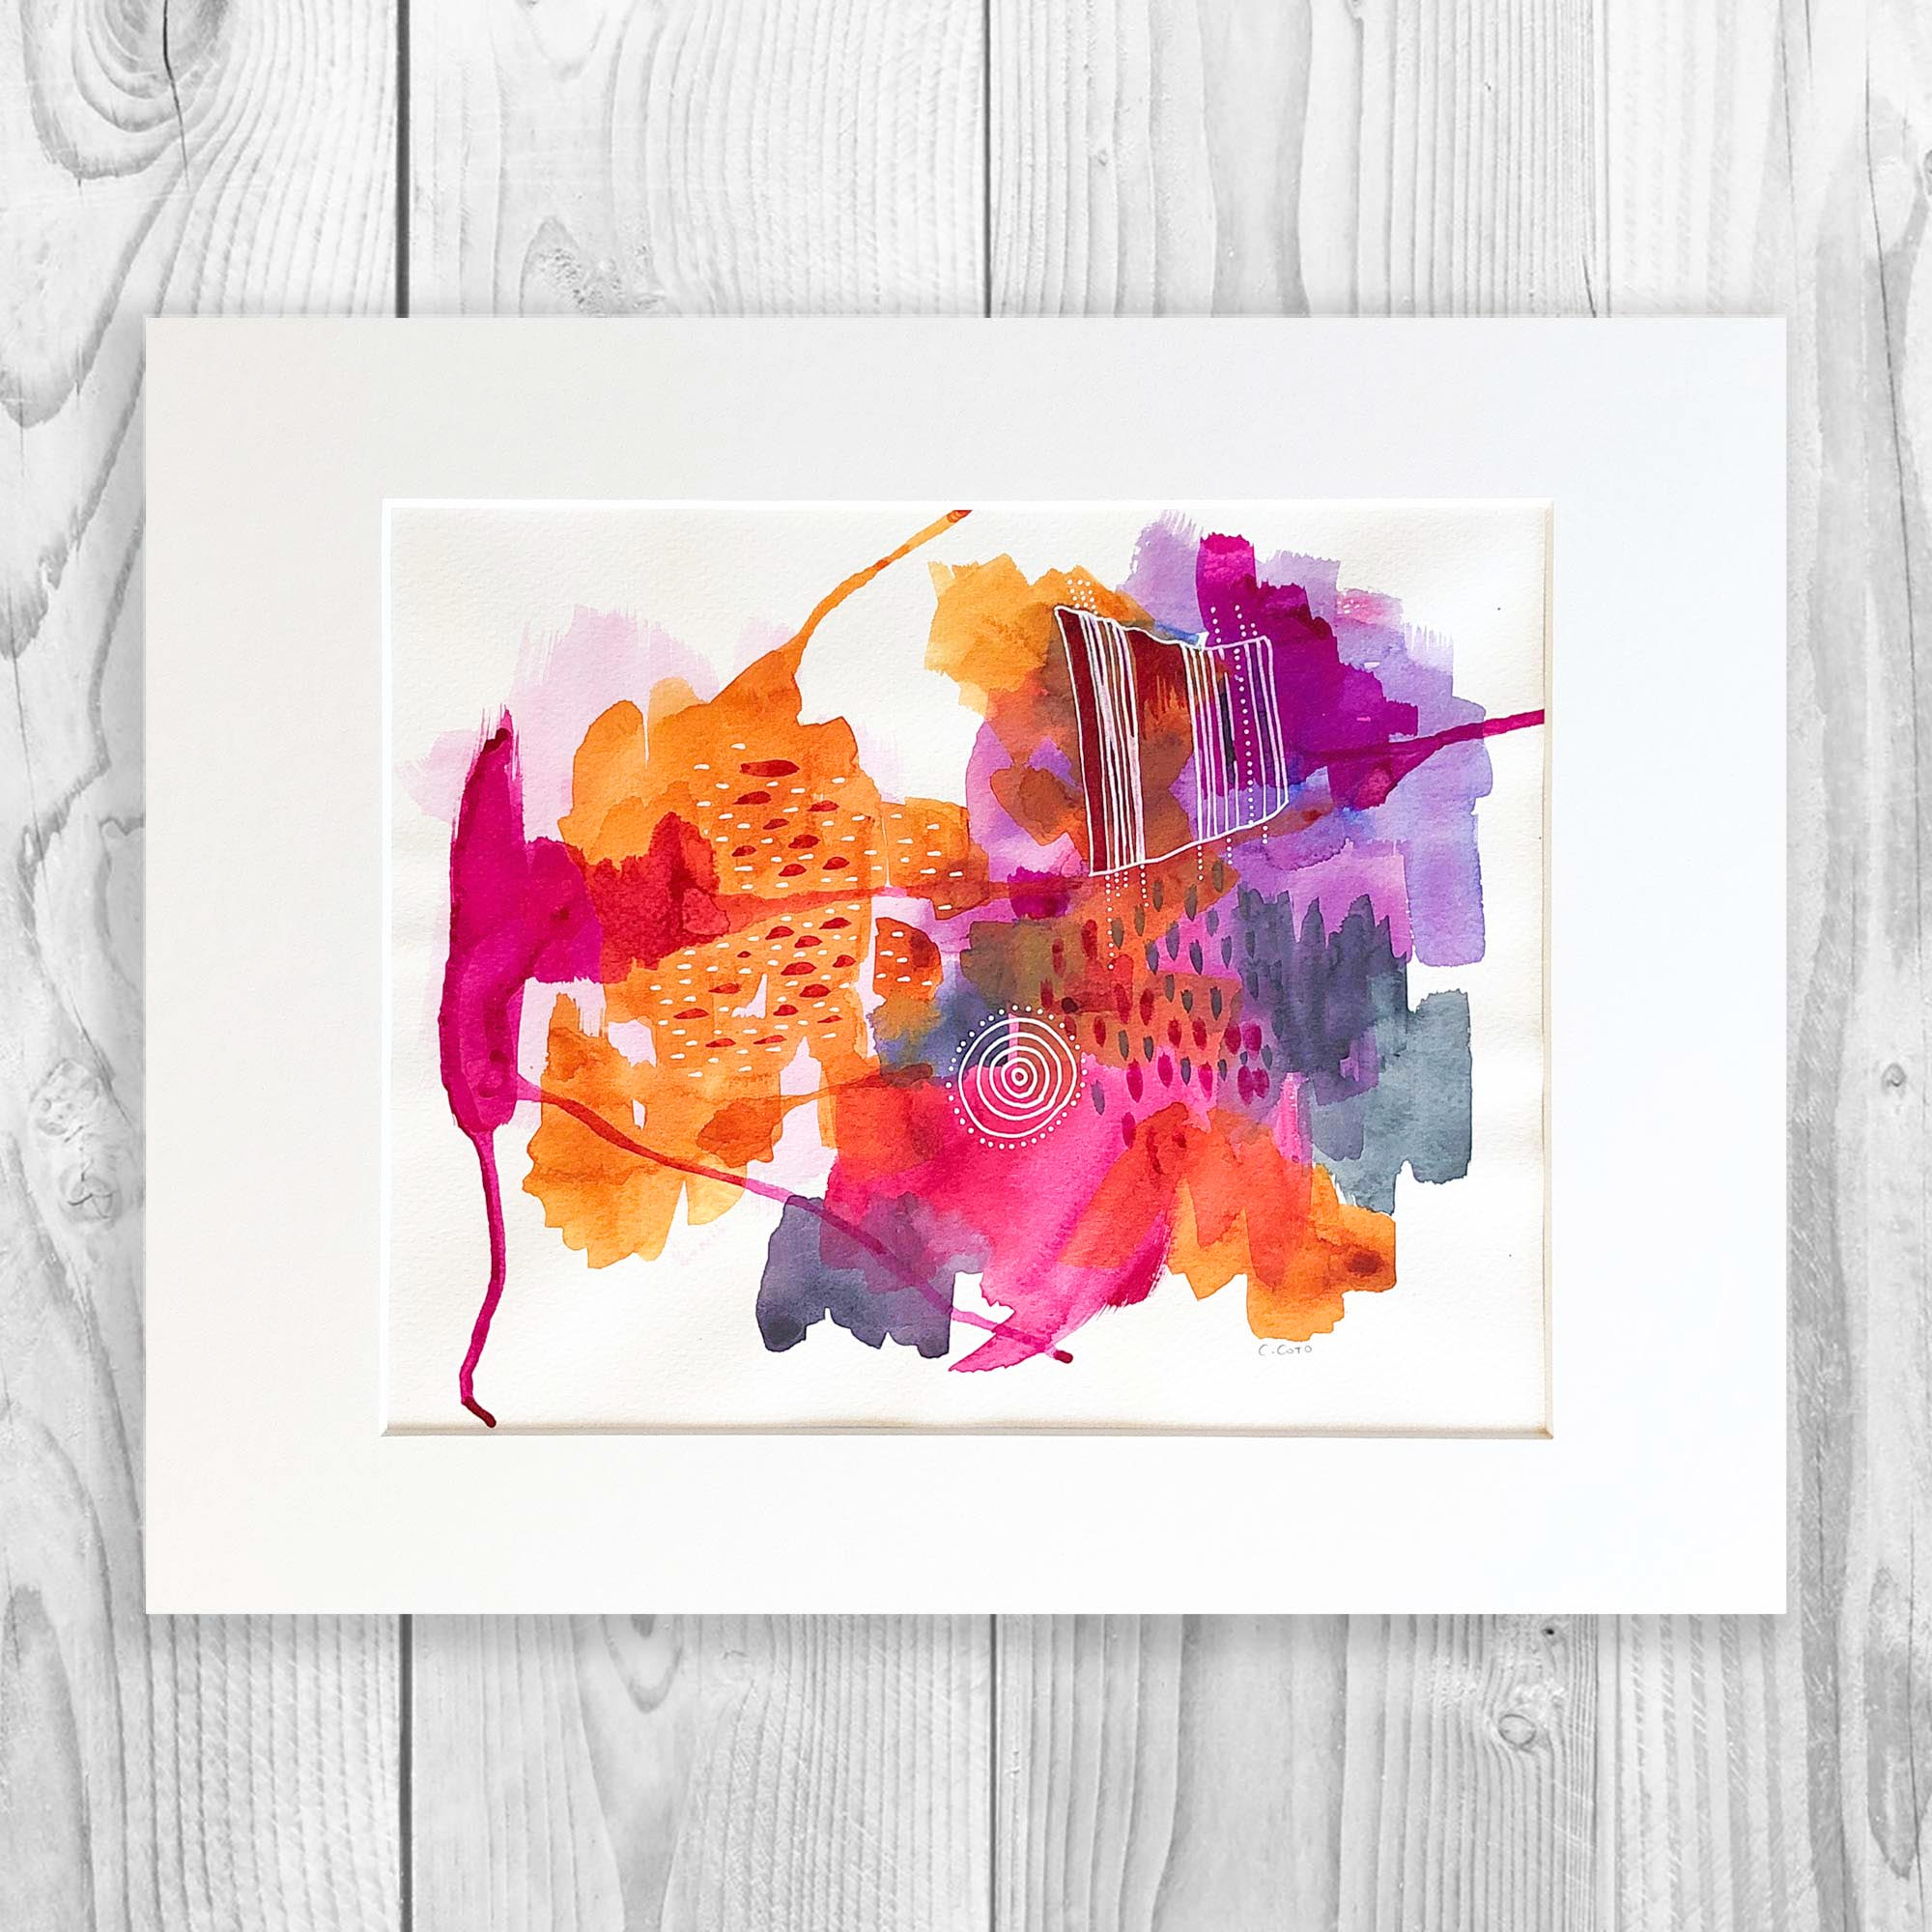 Magenta Abstract - Unframed, Matted to Standard Frame Size